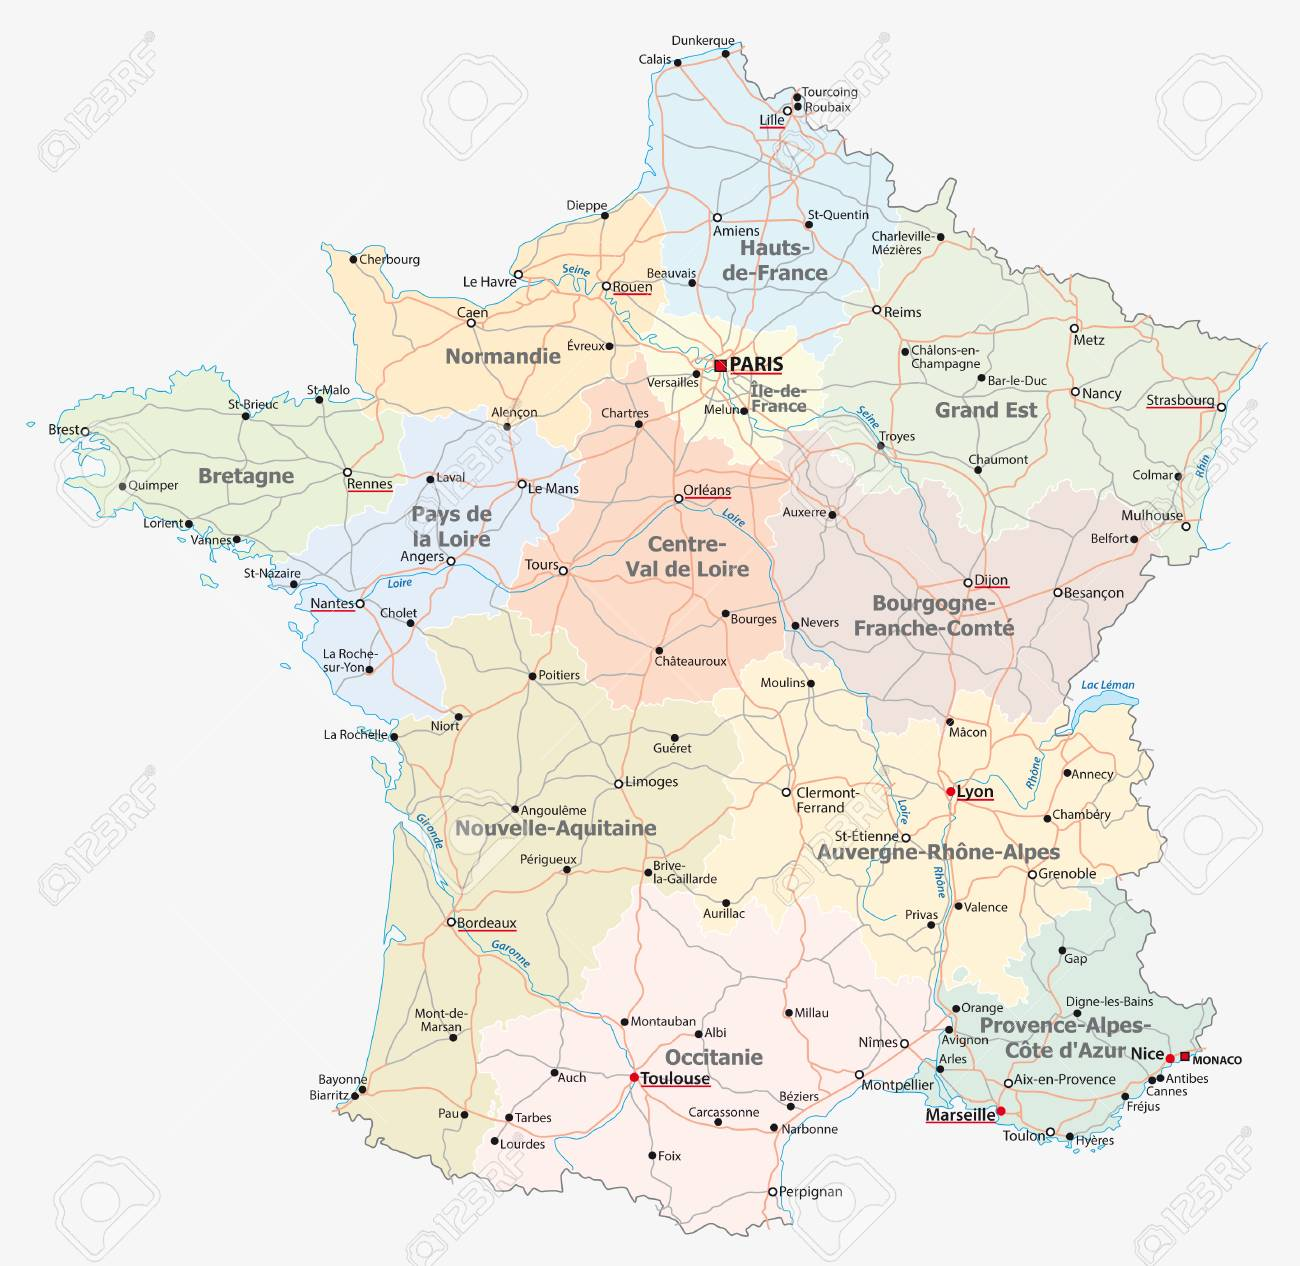 Brive France Map.France Road Administrative And Political Vector Map Royalty Free